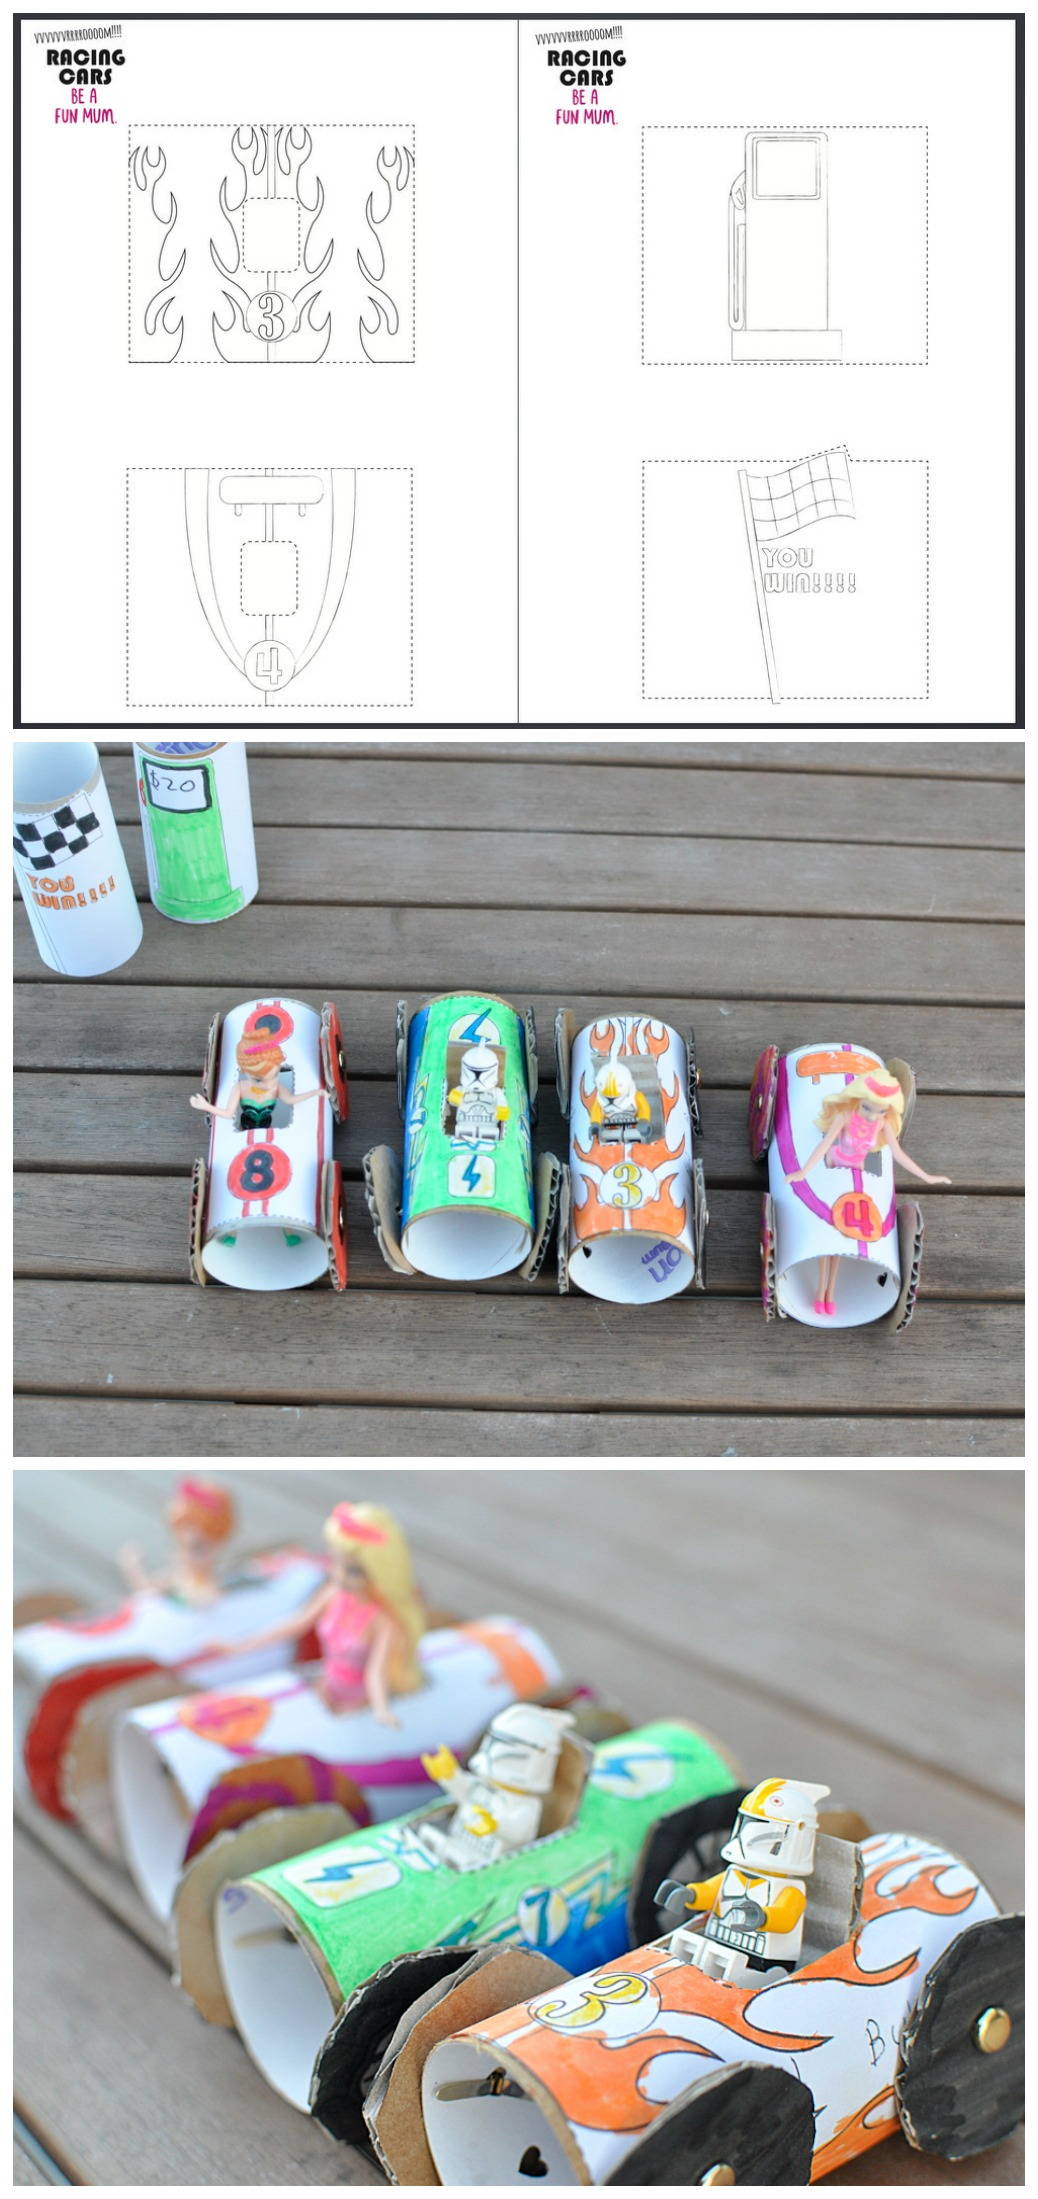 A printable to make toilet roll racing cars